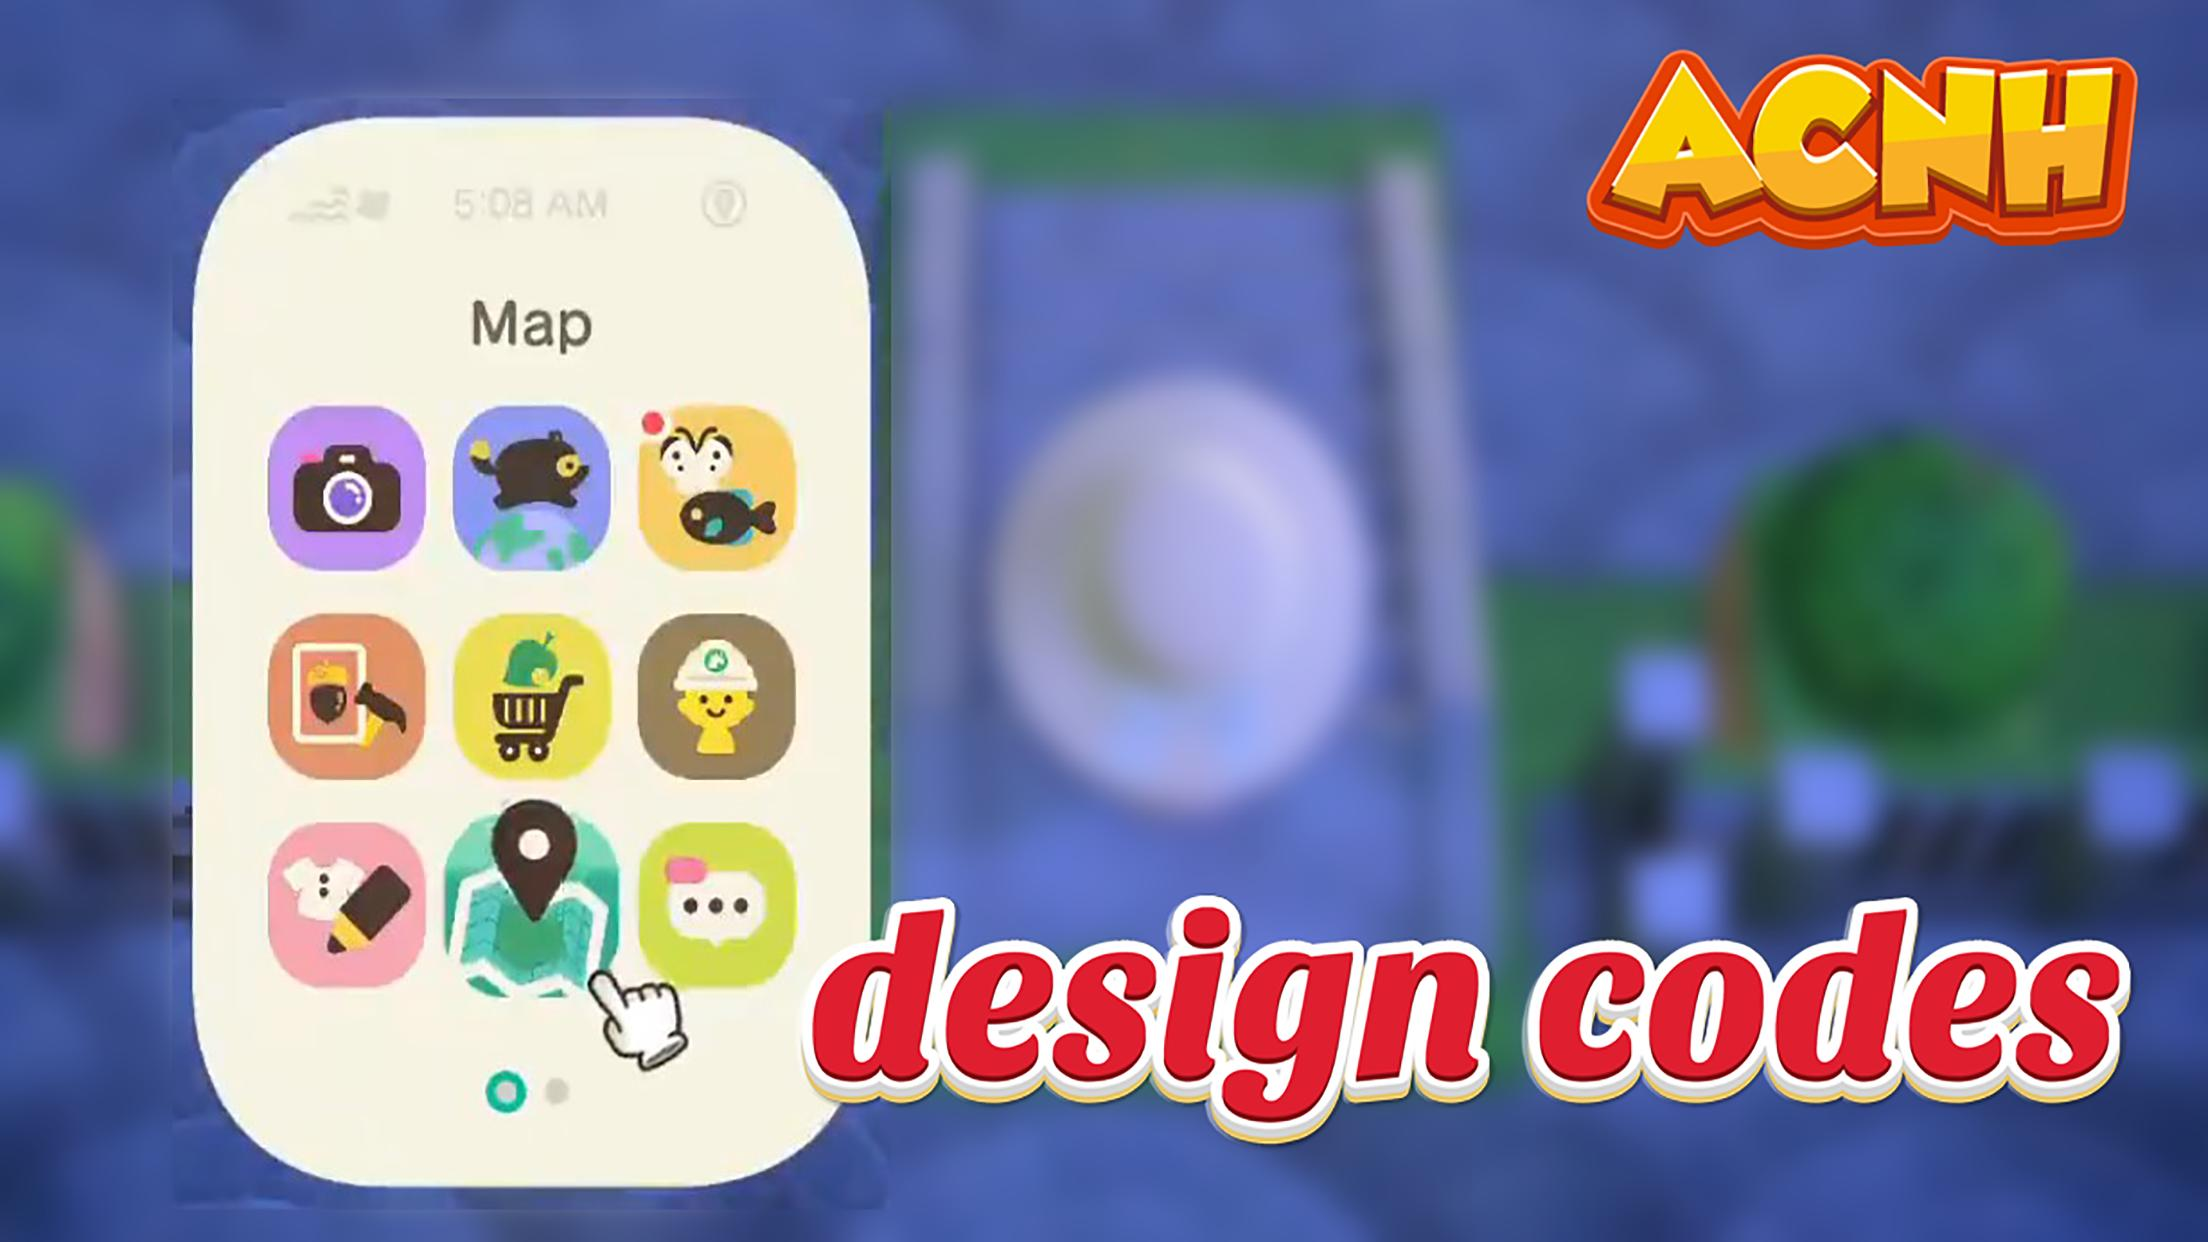 Android용 Guide for(ACNH) Animal Crossing New Horizons ...